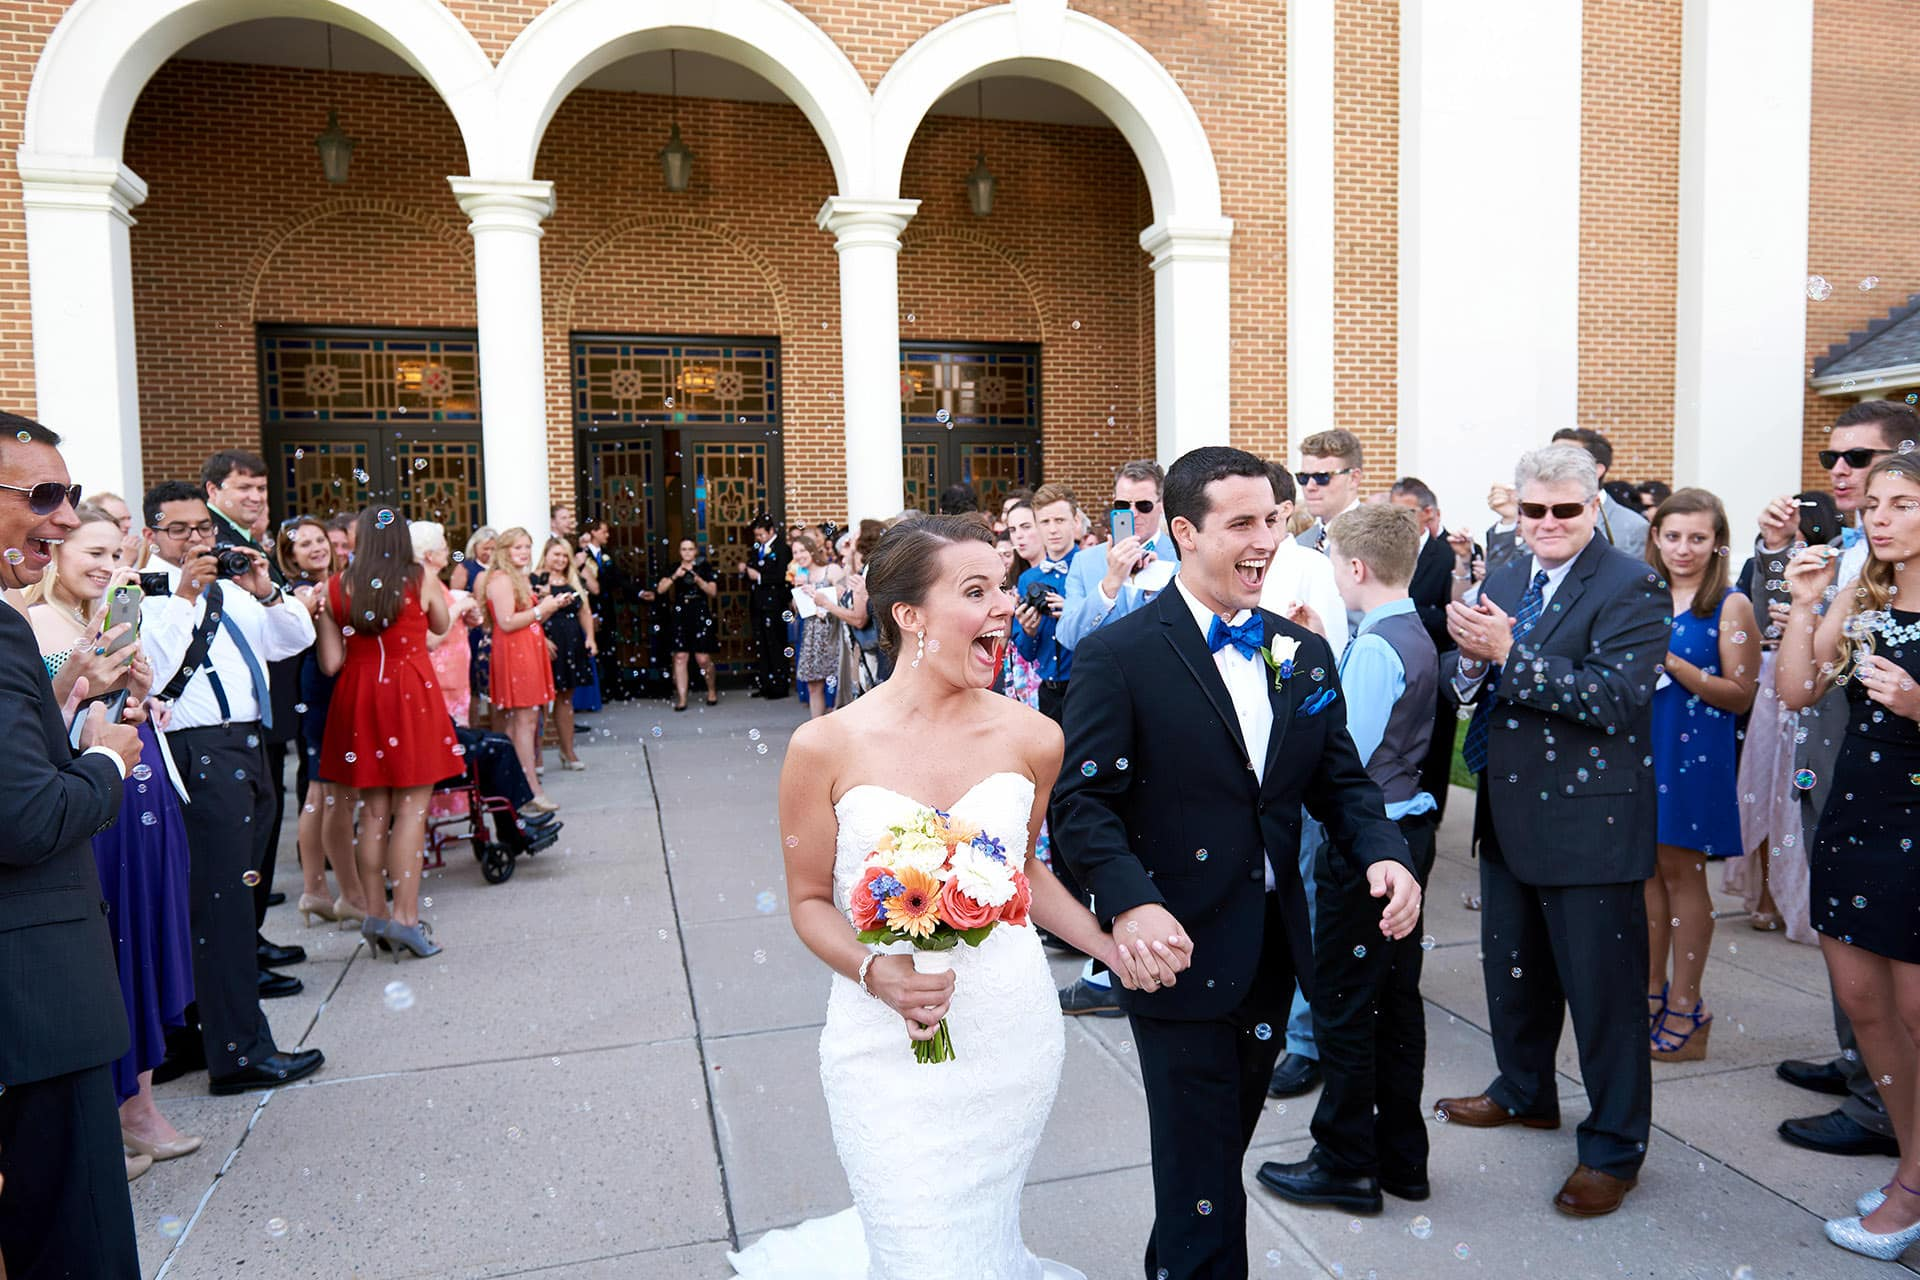 bride + groom leaving church wedding photo